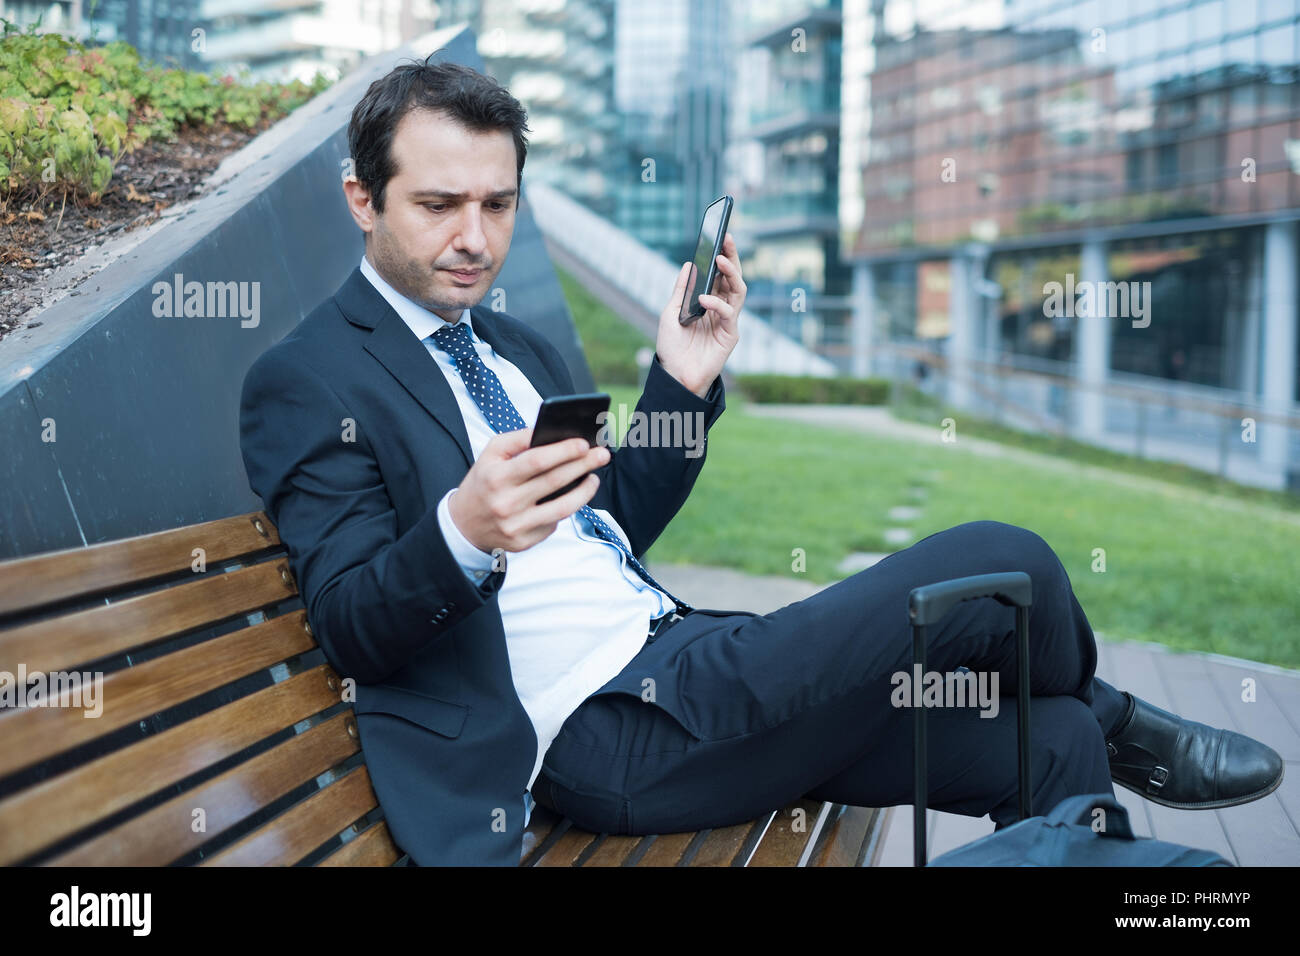 Stressed and multitasking businessman holding two smartphones - Stock Image